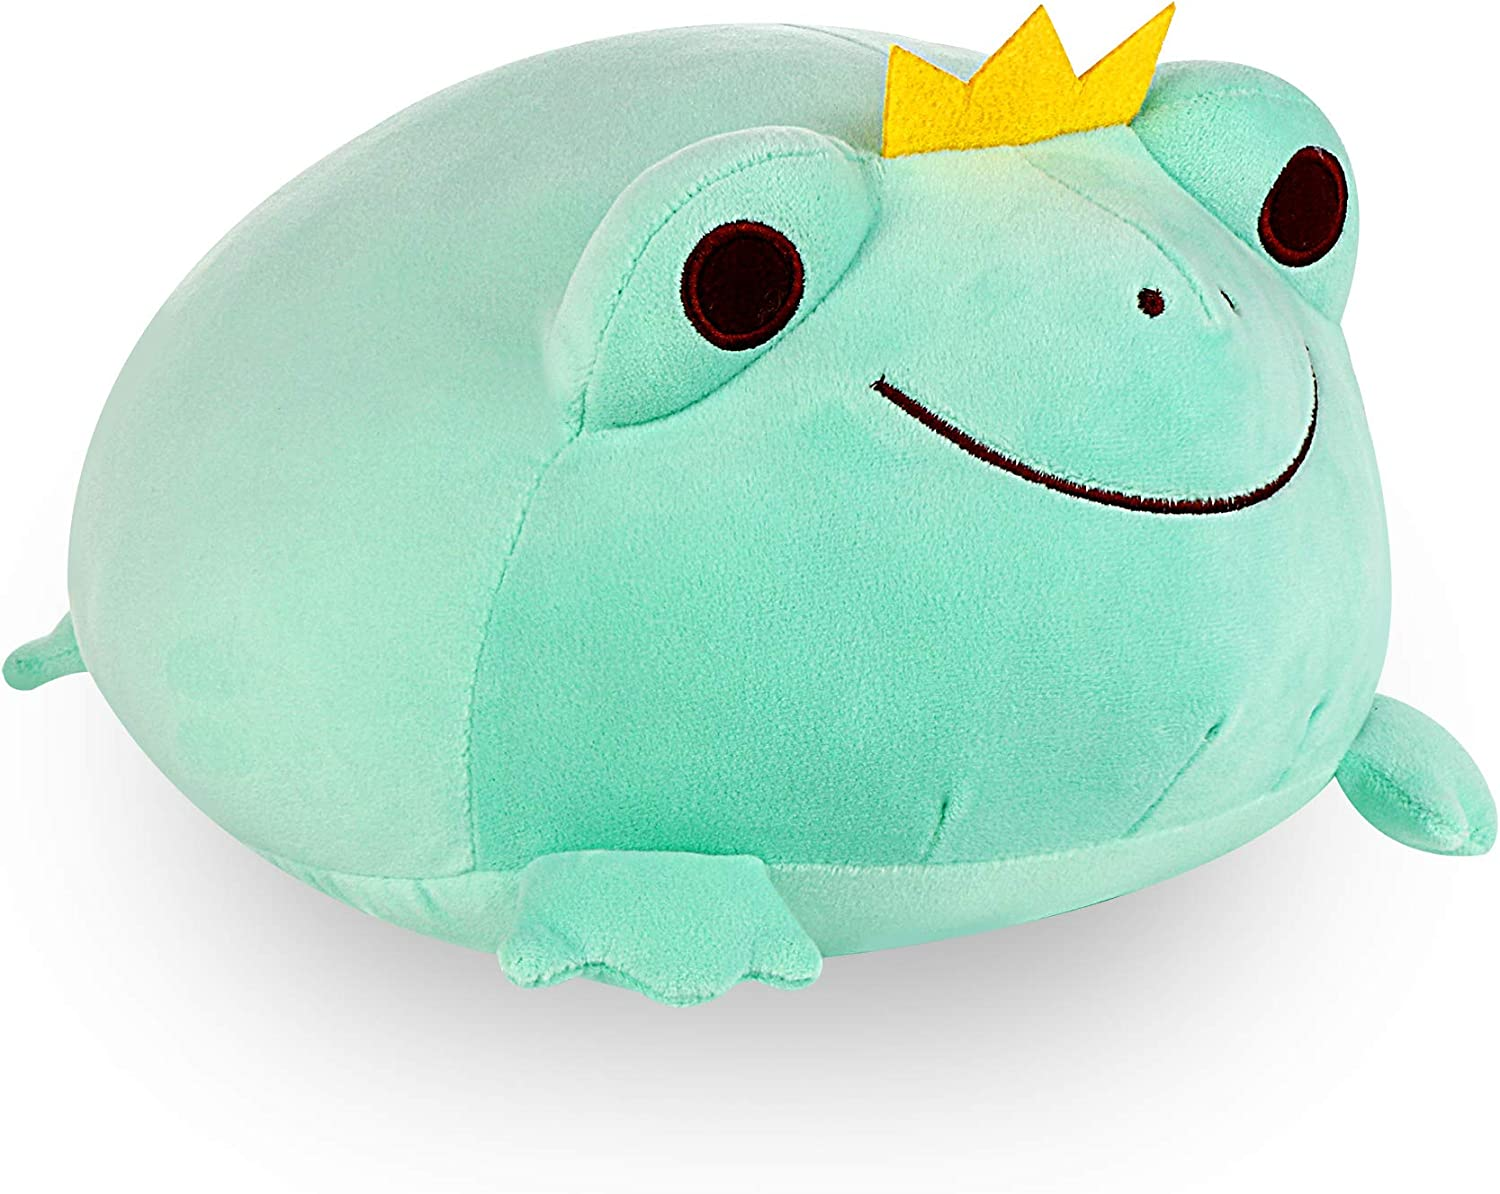 """Frog Stuffed Animal Durable Frog Plush Toy Stretchy Plush Frog Adorable Stuffed Frog with Crown Soft Frog Plush Pillow Creative Decoration Cuddly Gift for Kids Children Baby Girls Boys, Green 14"""""""